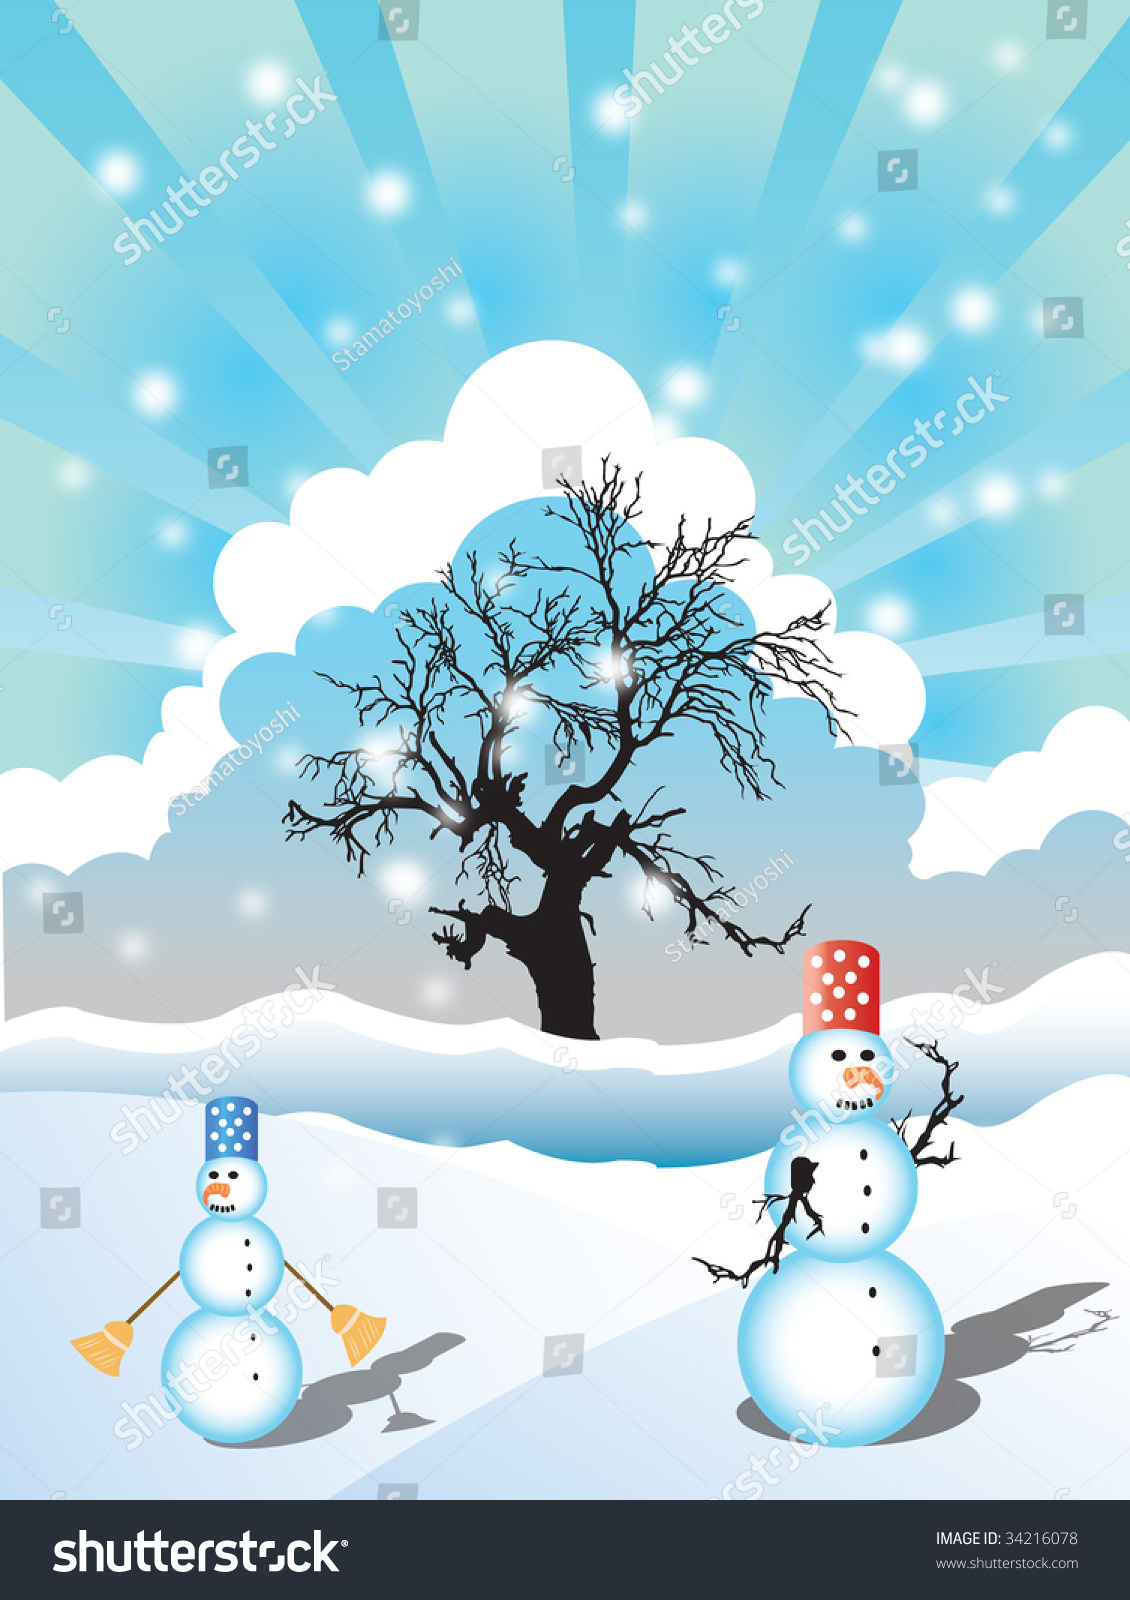 Illustration Of A Winter Landscape With Two Snowmen And